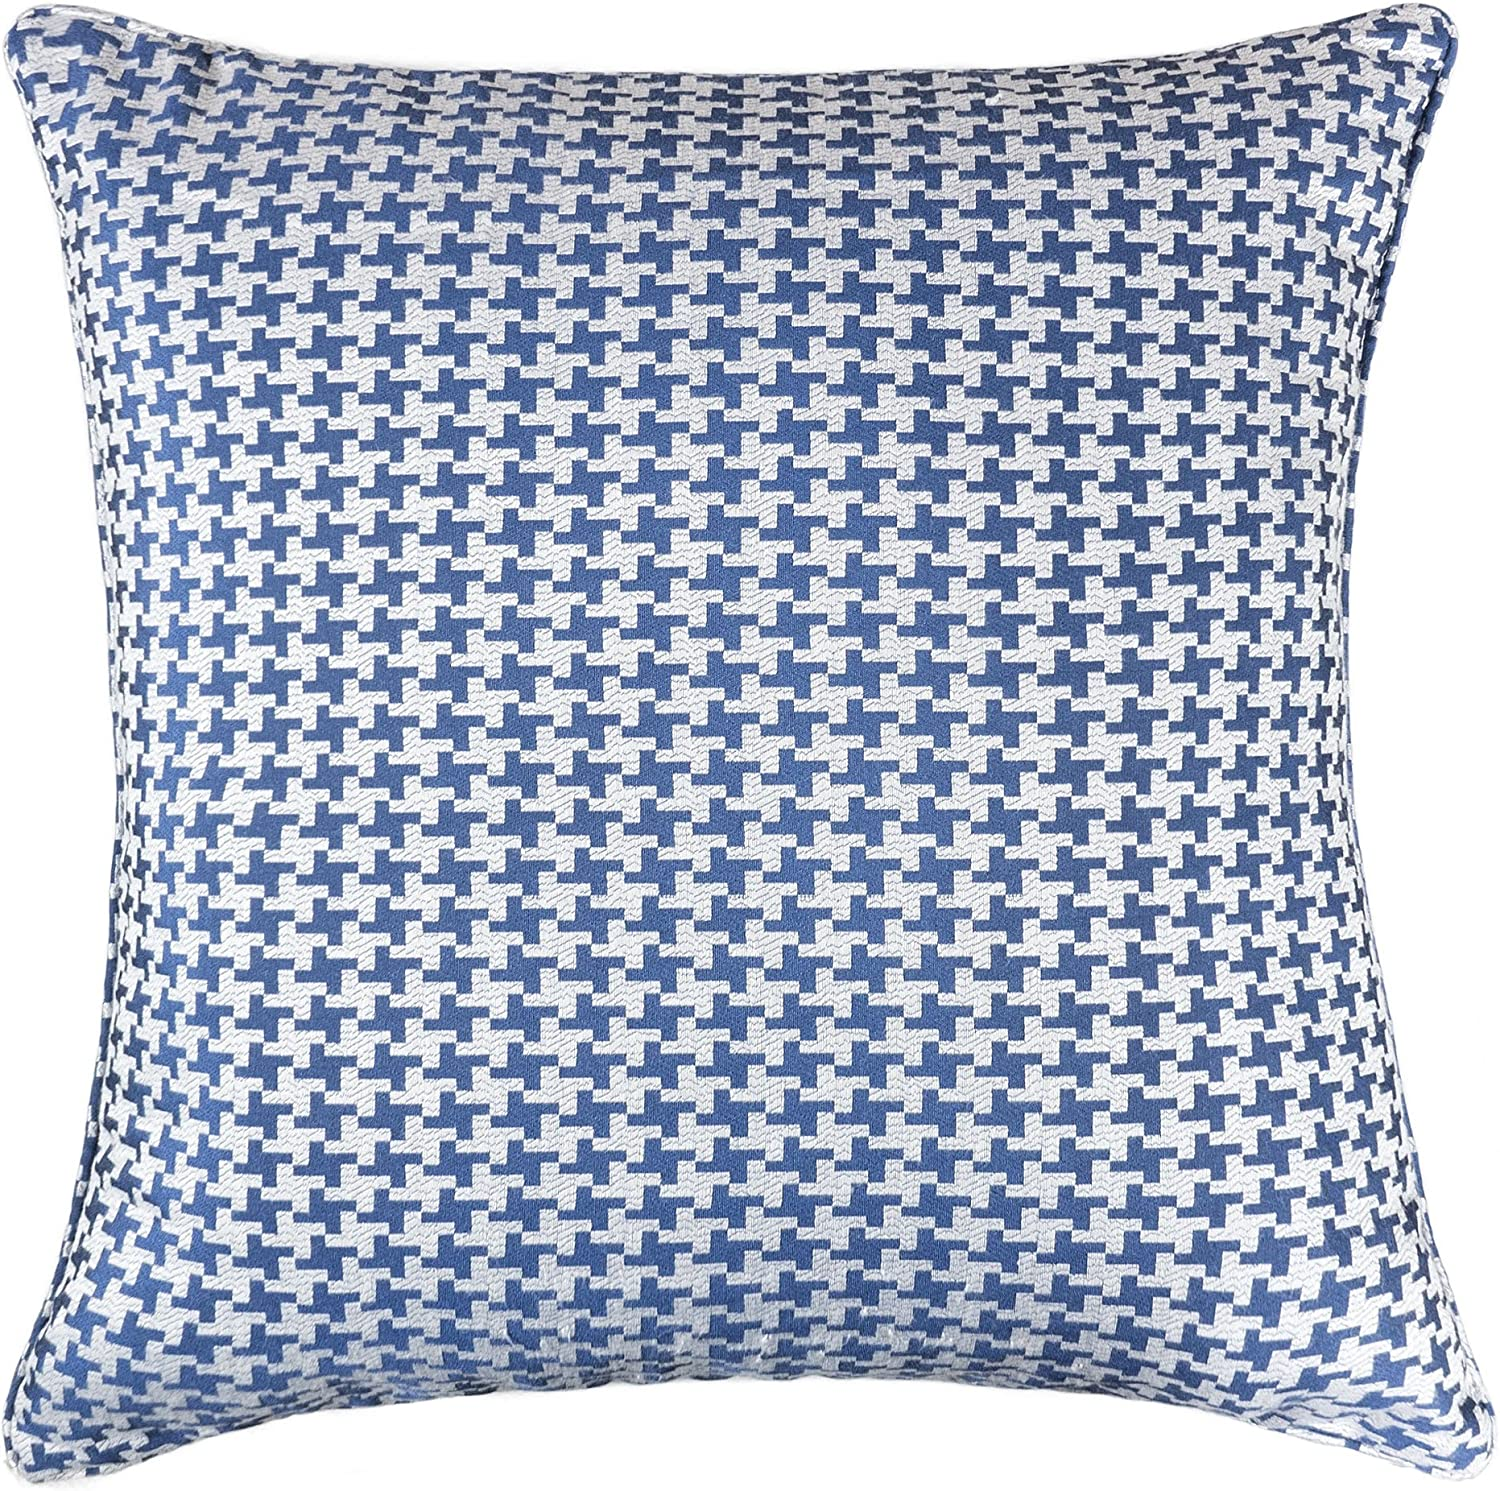 Homey Cozy Jacquard Cotton Throw Pillow Cover Navy Blue Houndstooth Modern Silk Plaid Textured Sofa Couch Decorative Pillow Case 20x20 Cover Only Home Kitchen